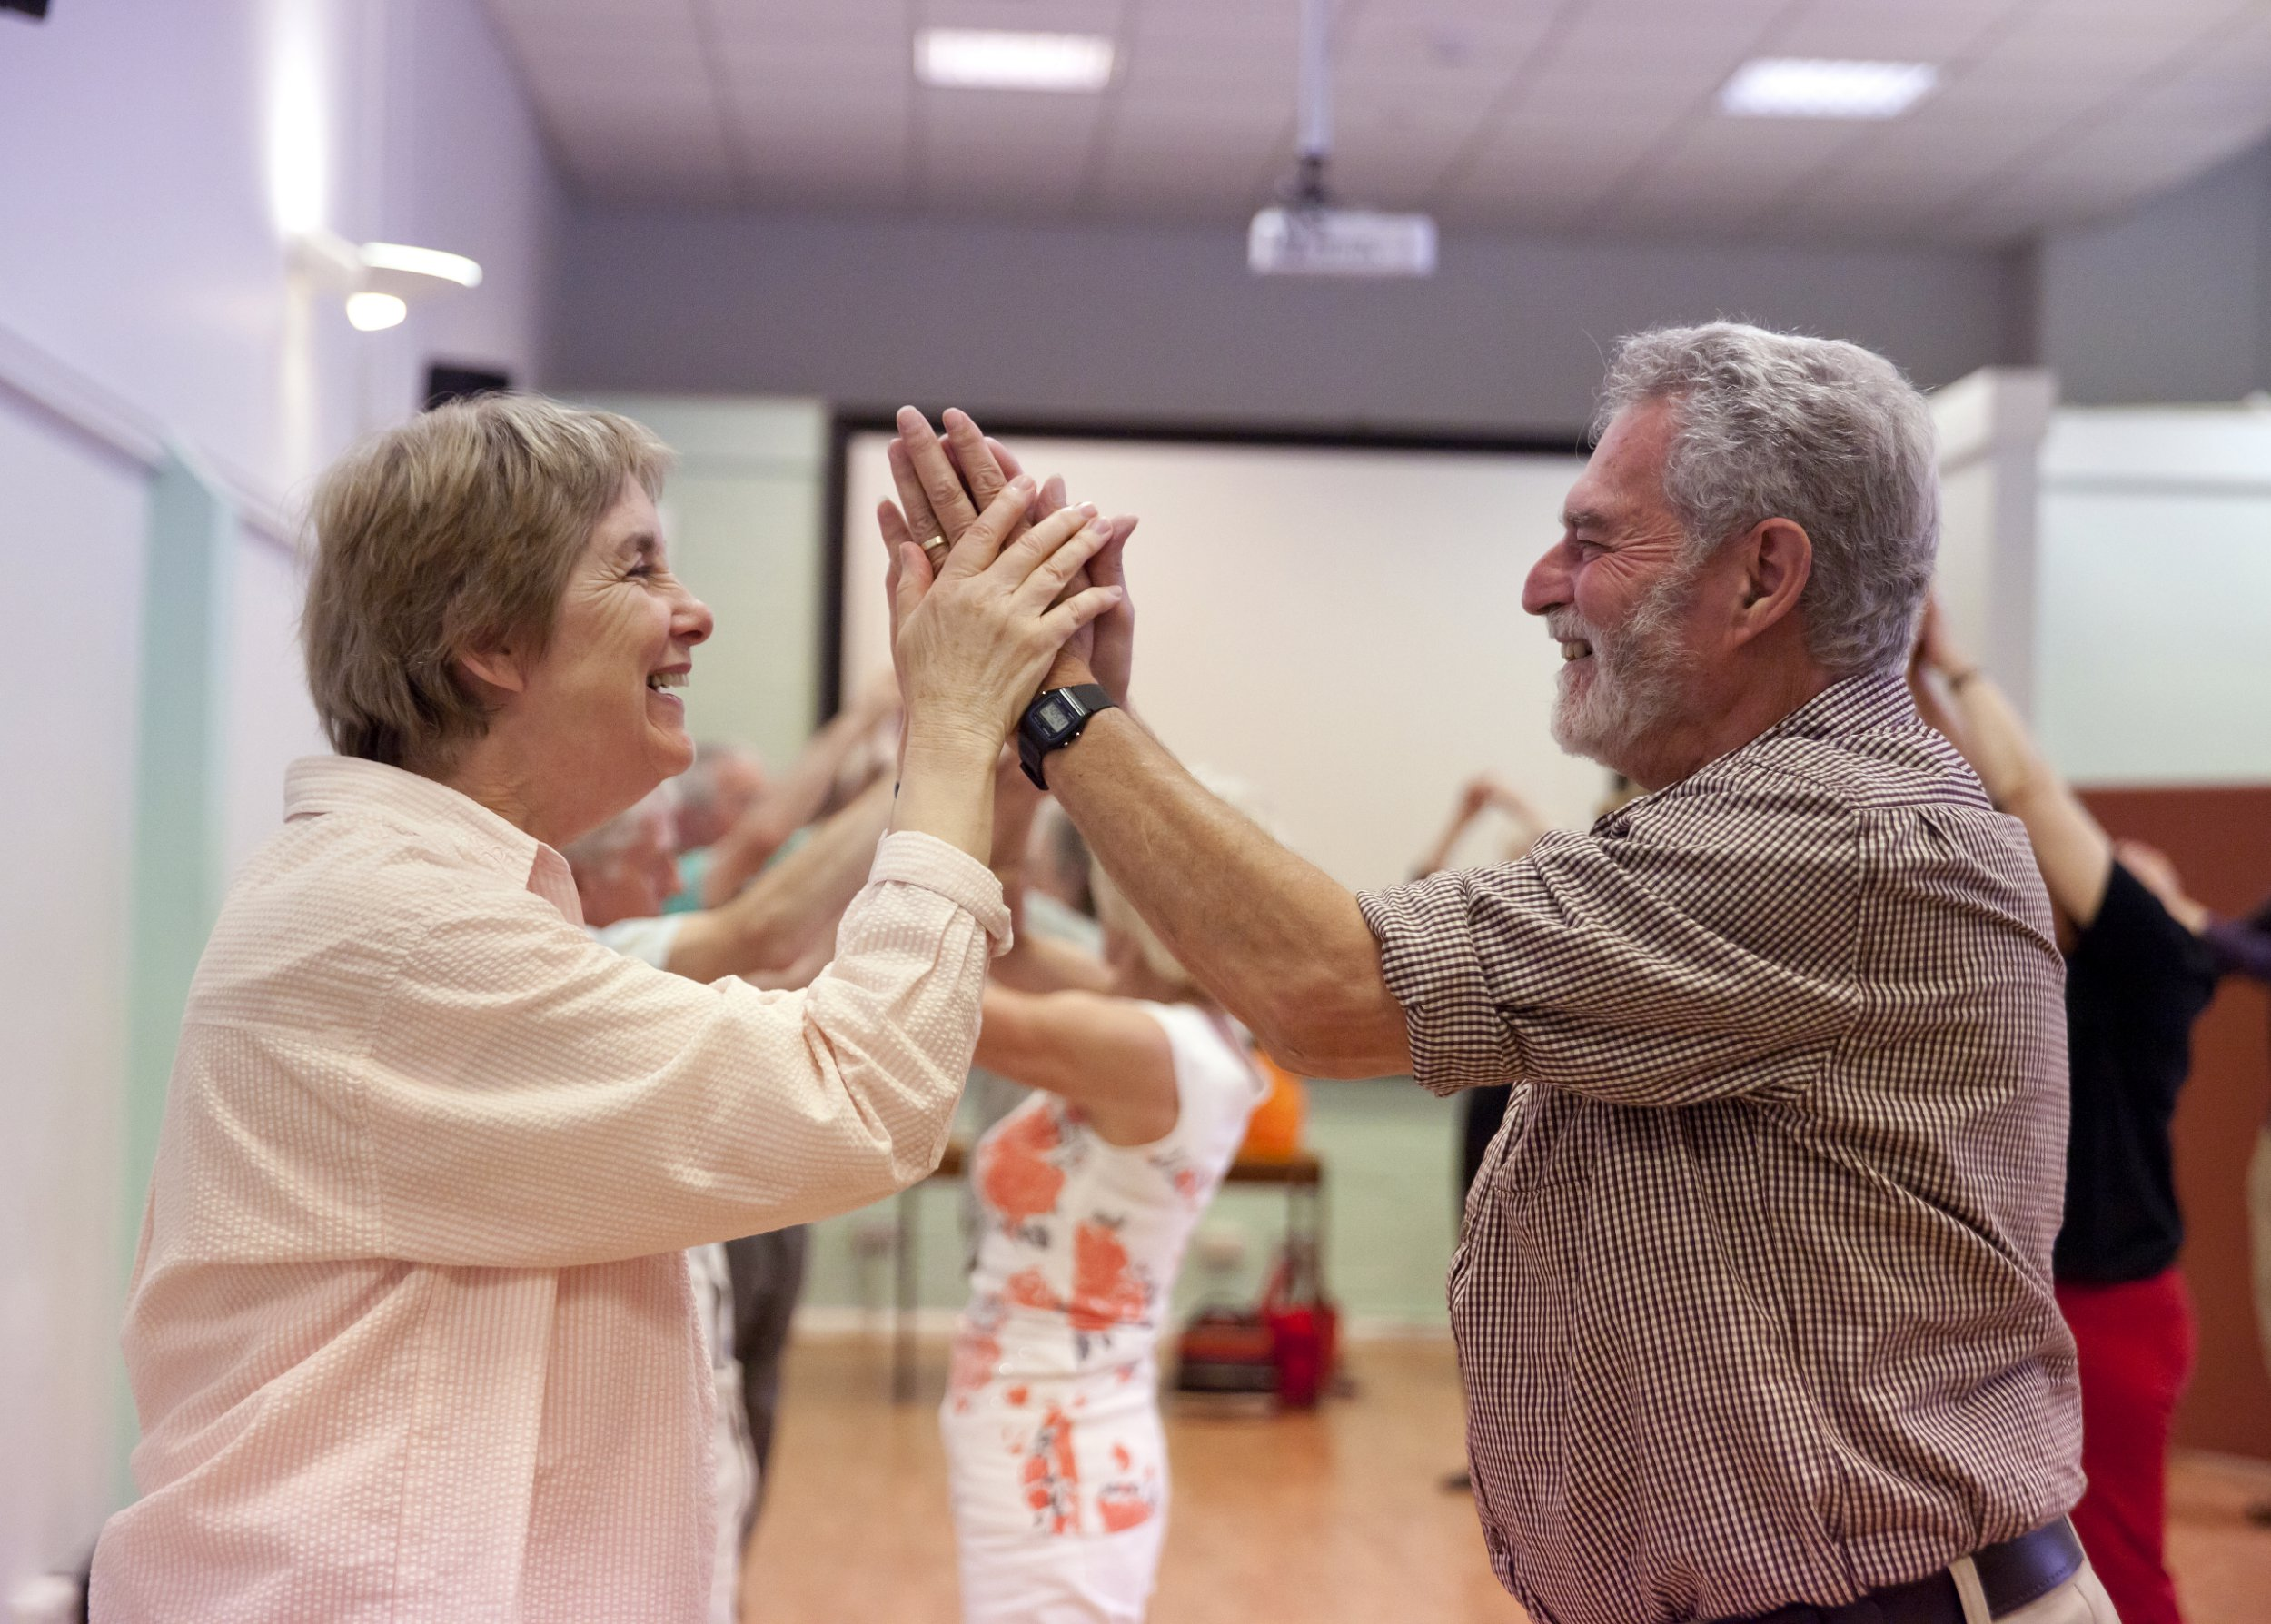 Ballet is giving people with Parkinson's their lives back